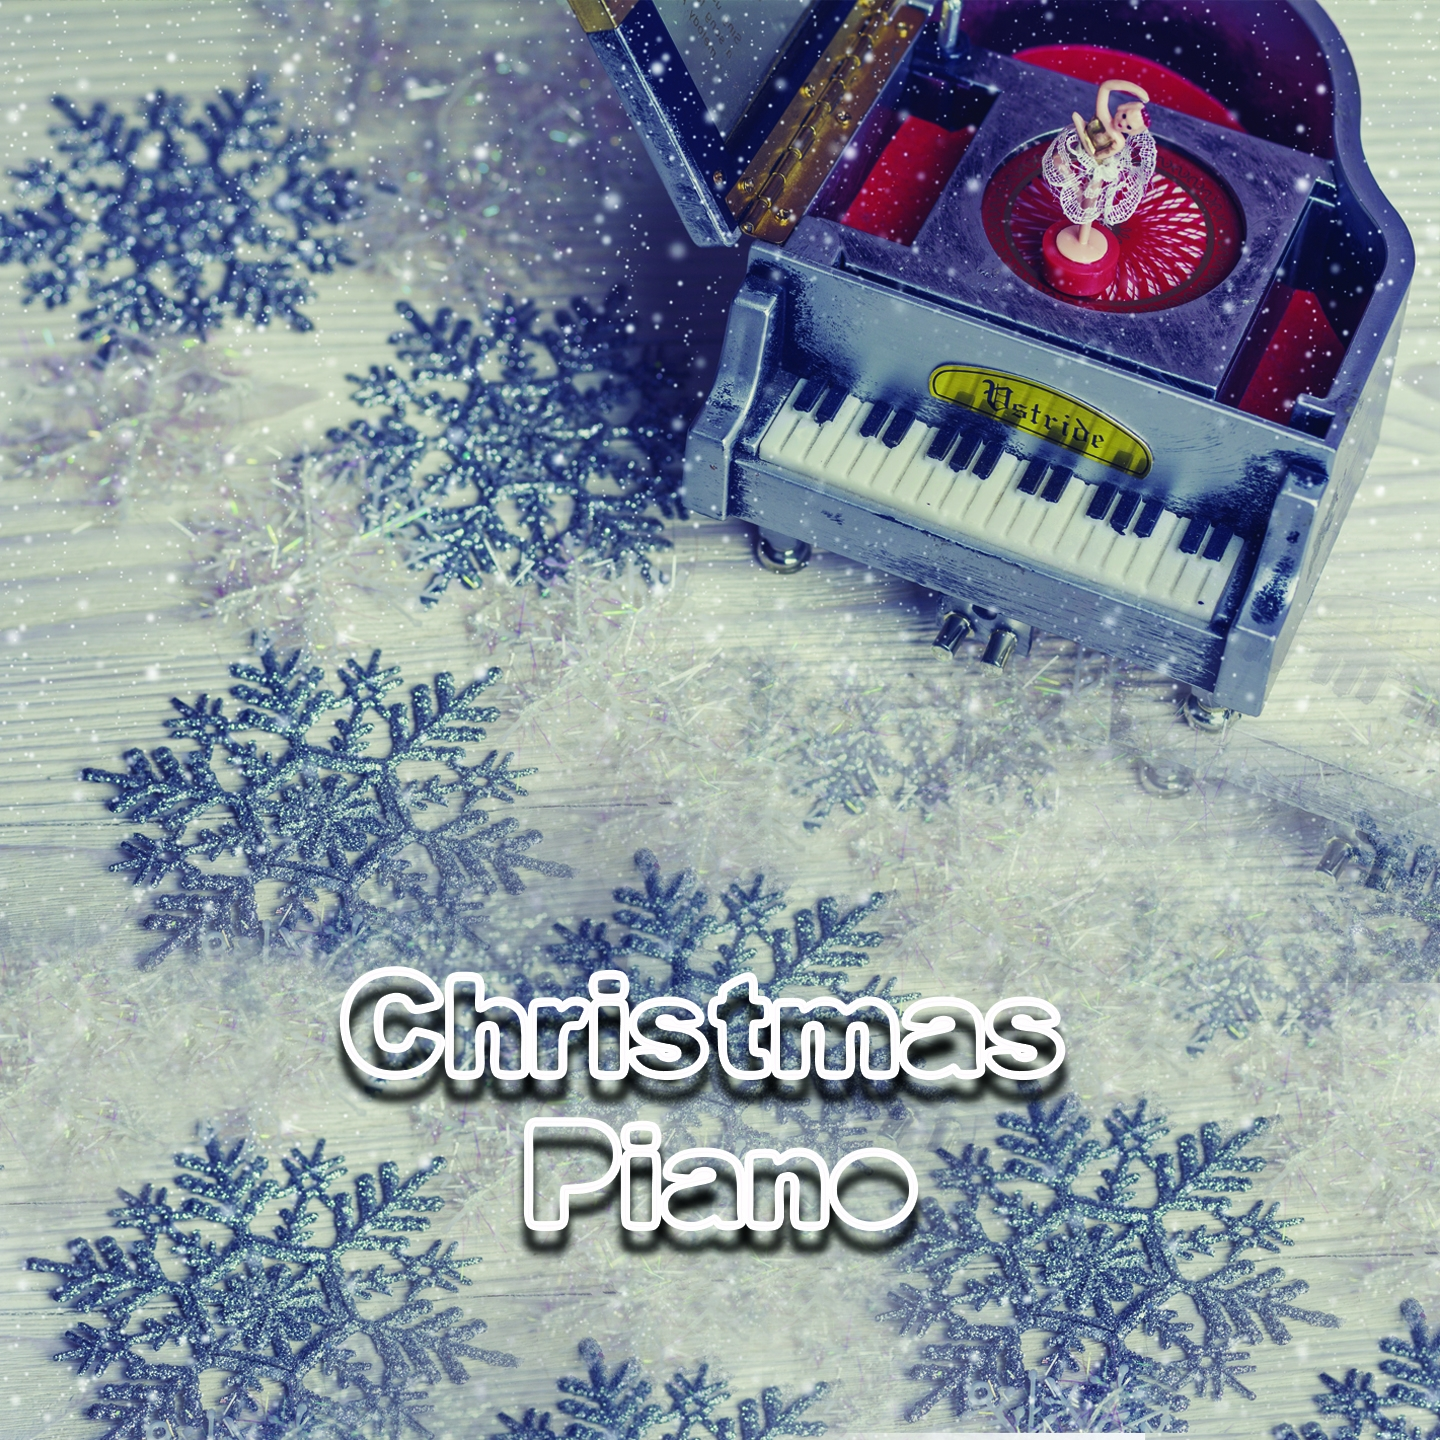 0 - Christmas Piano (Christmas Atmosphere)